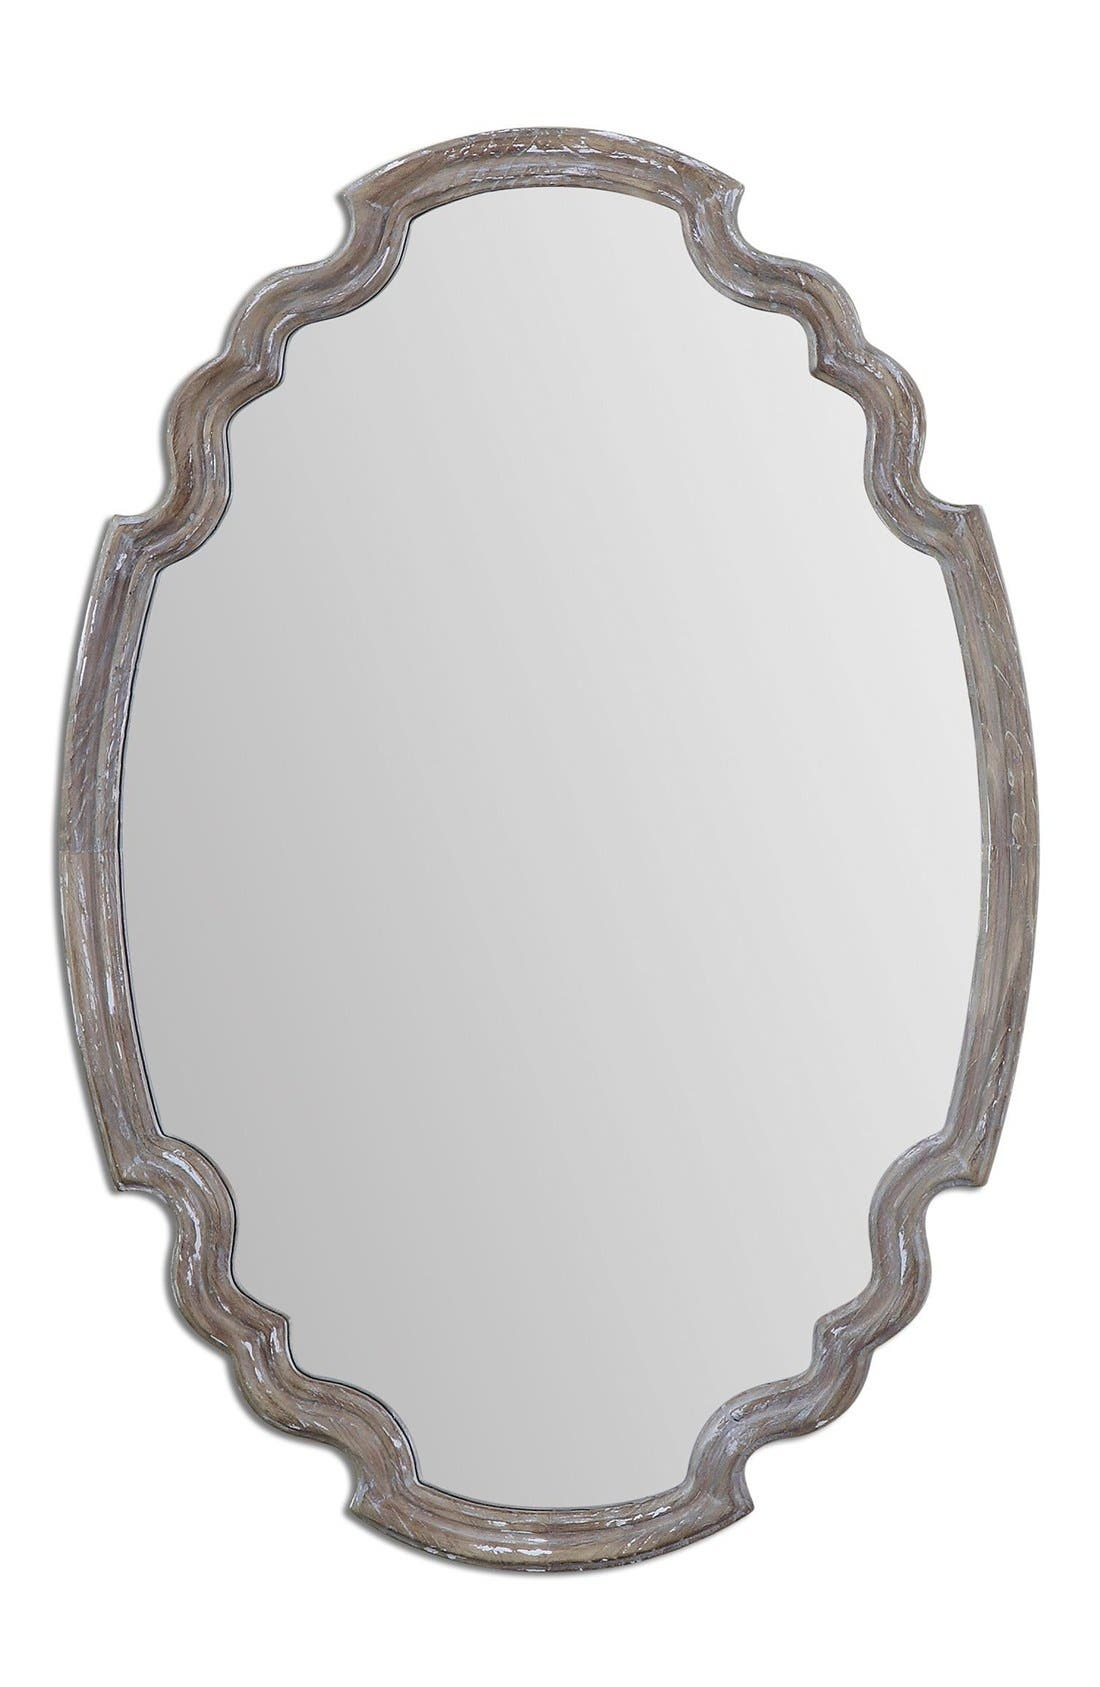 Main Image - Uttermost 'Ludovica' Aged Finish Oval Wall Mirror